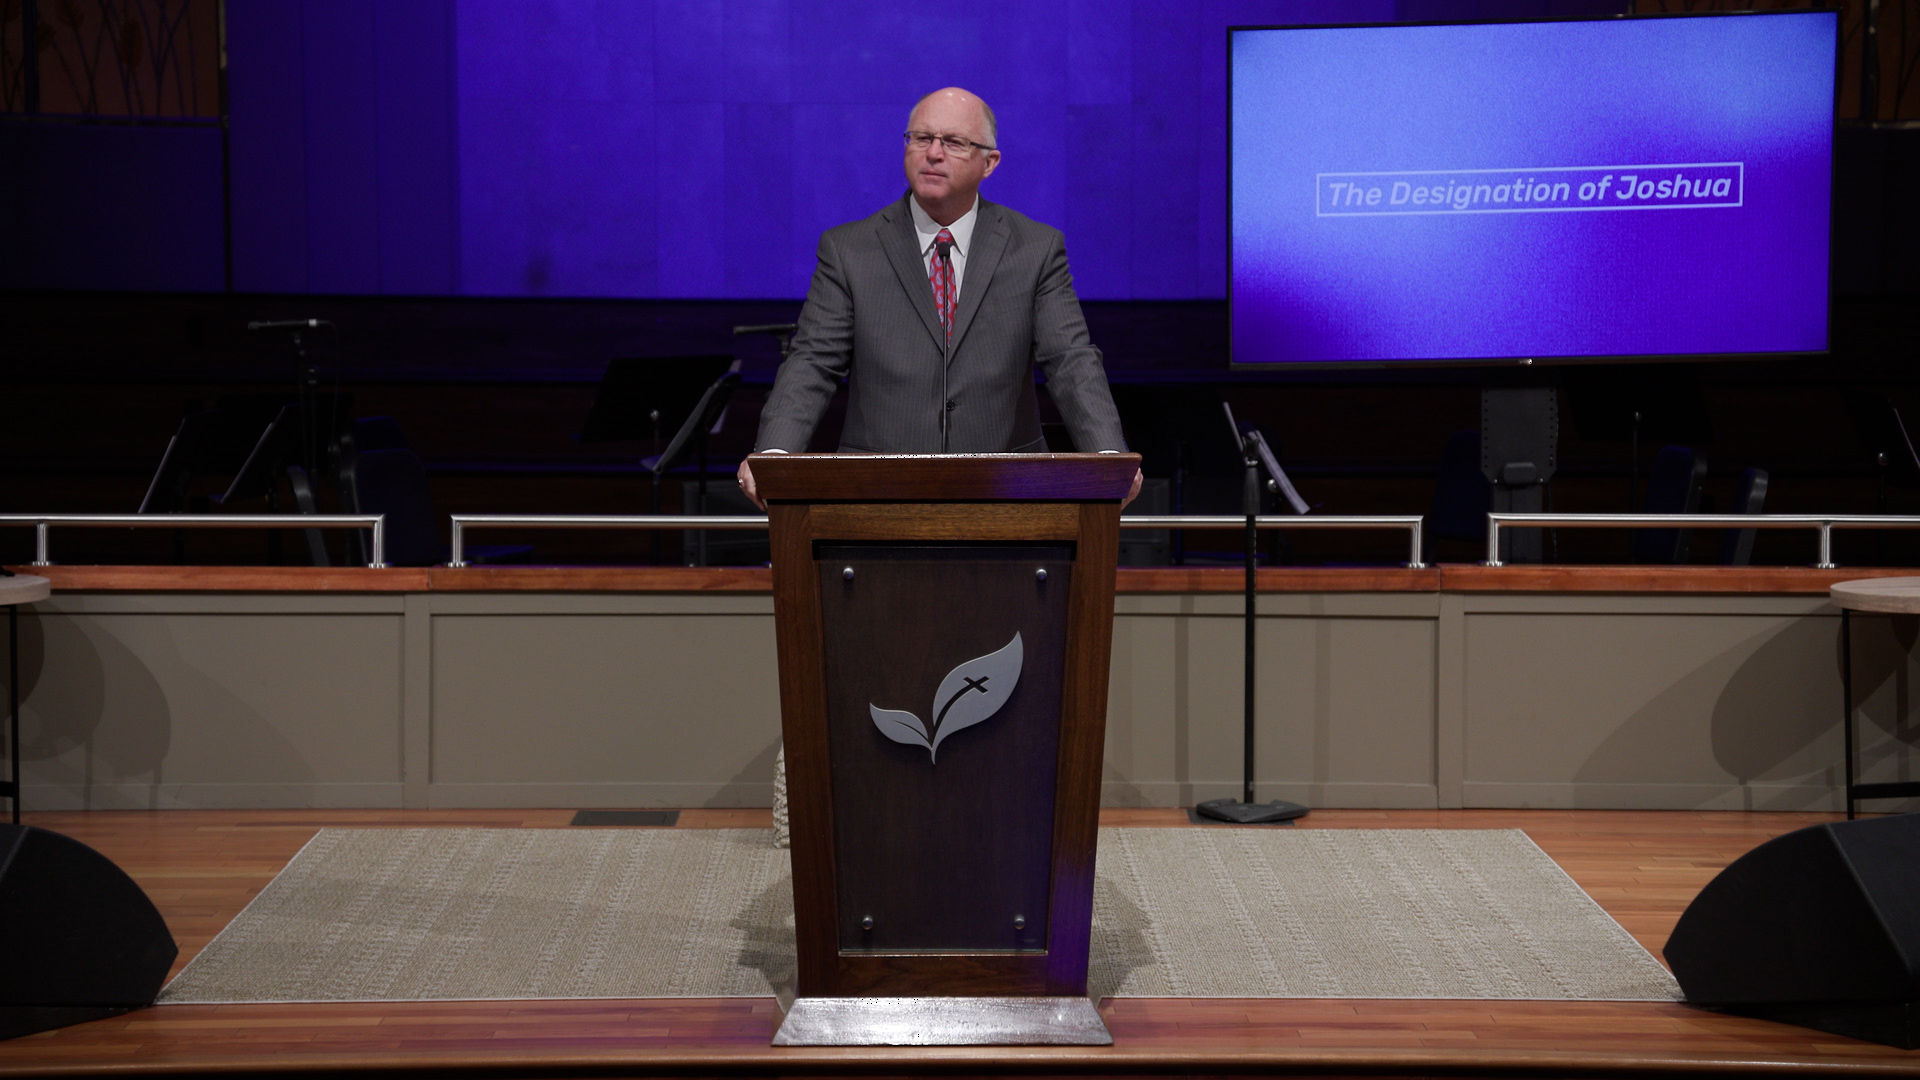 Pastor Paul Chappell: Overcoming a Crisis